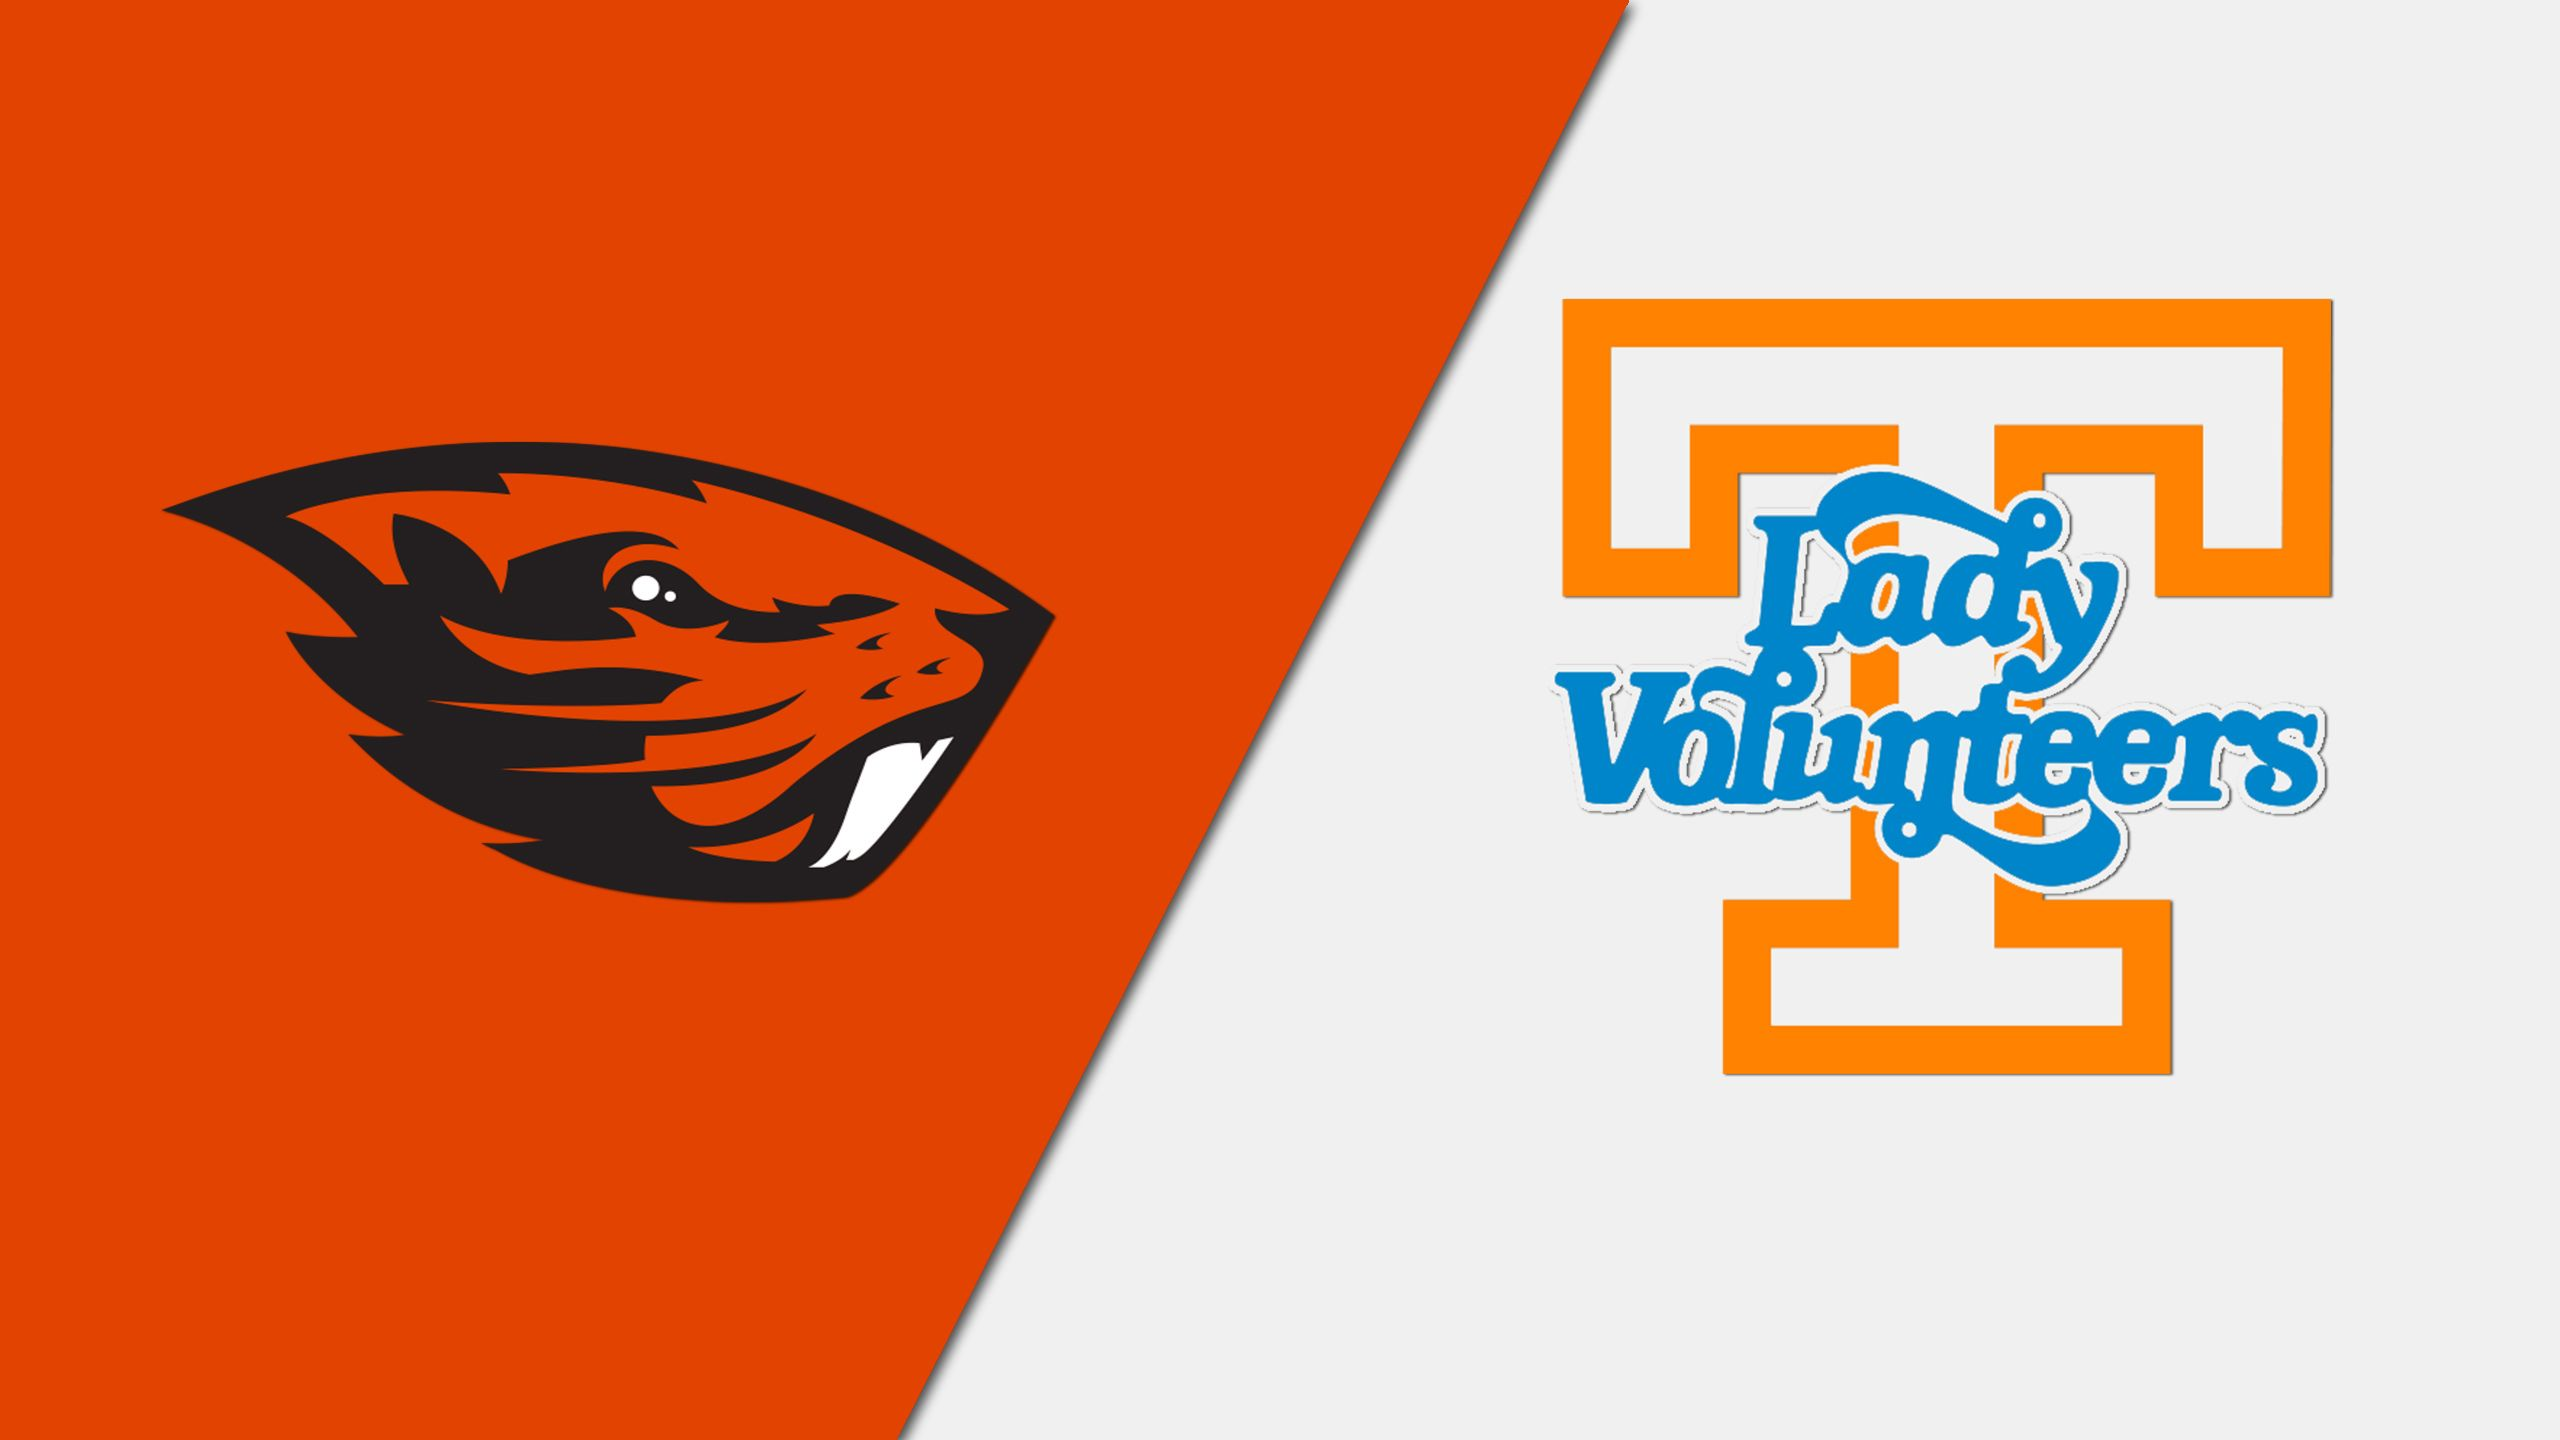 #6 Oregon State vs. #3 Tennessee (Second Round) (NCAA Women's Basketball Championship)